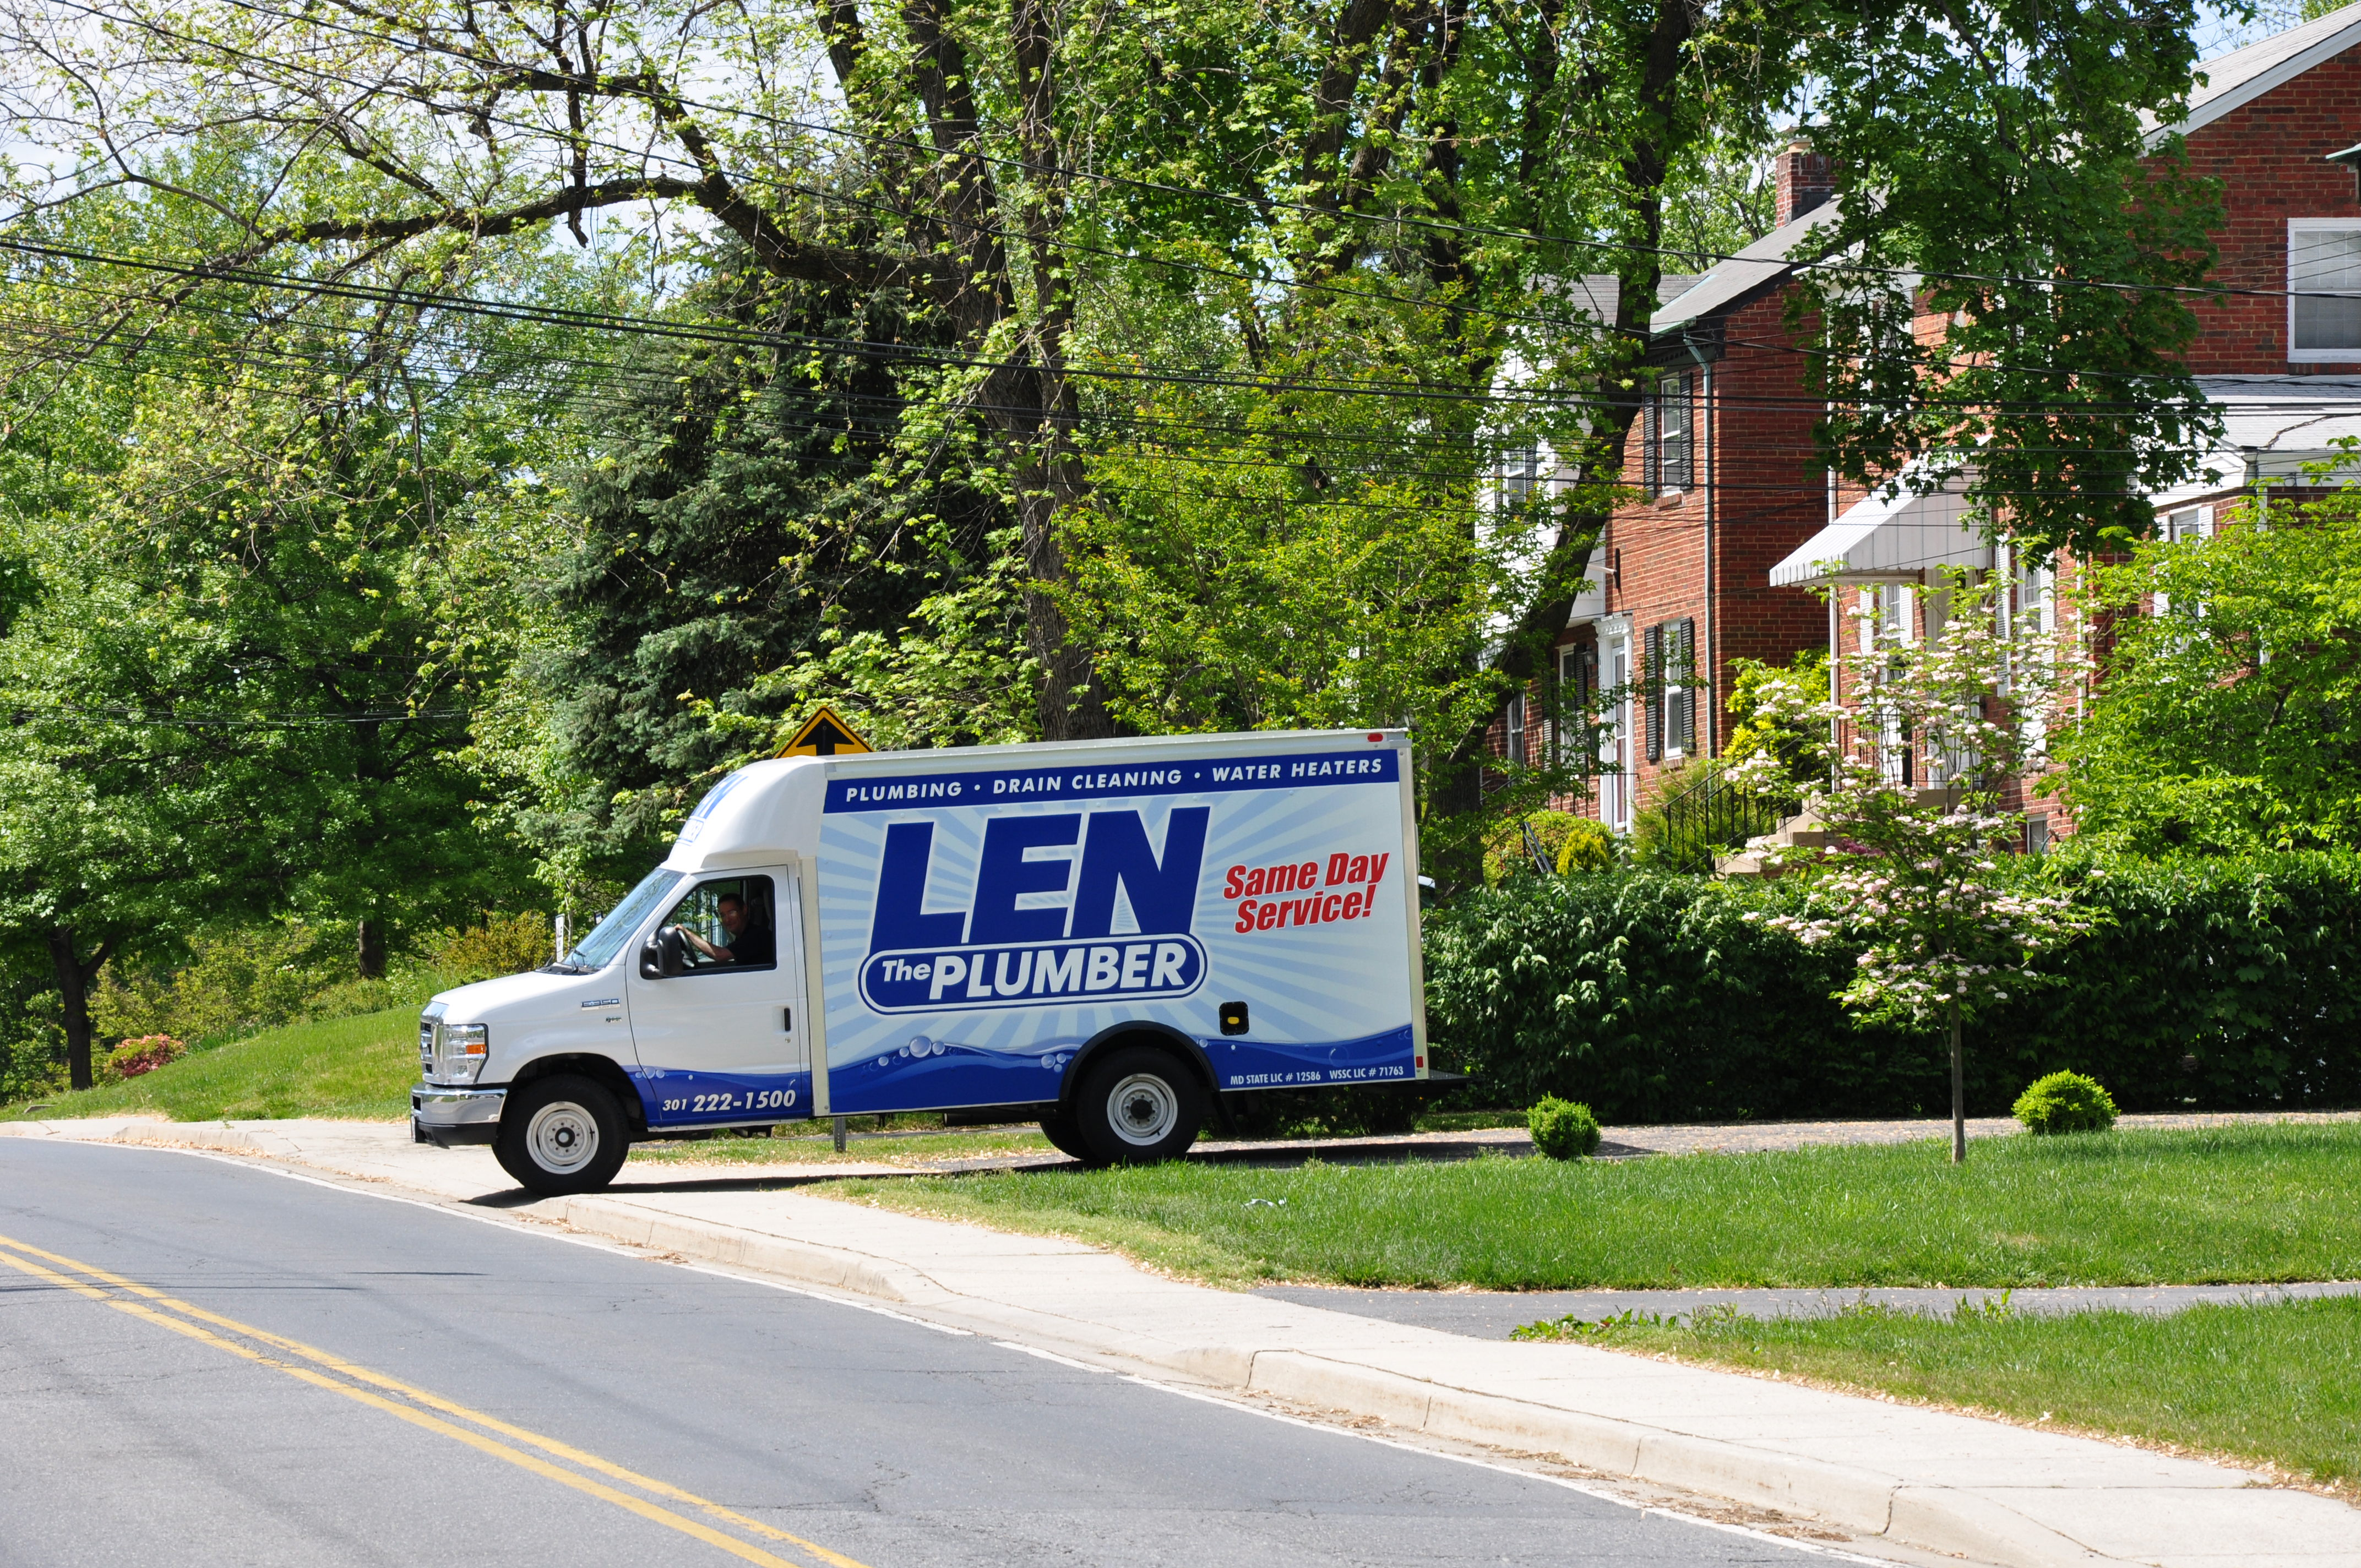 Len The Plumber commercial truck pulling out of a homeowner's driveway in the DMV Metro area.